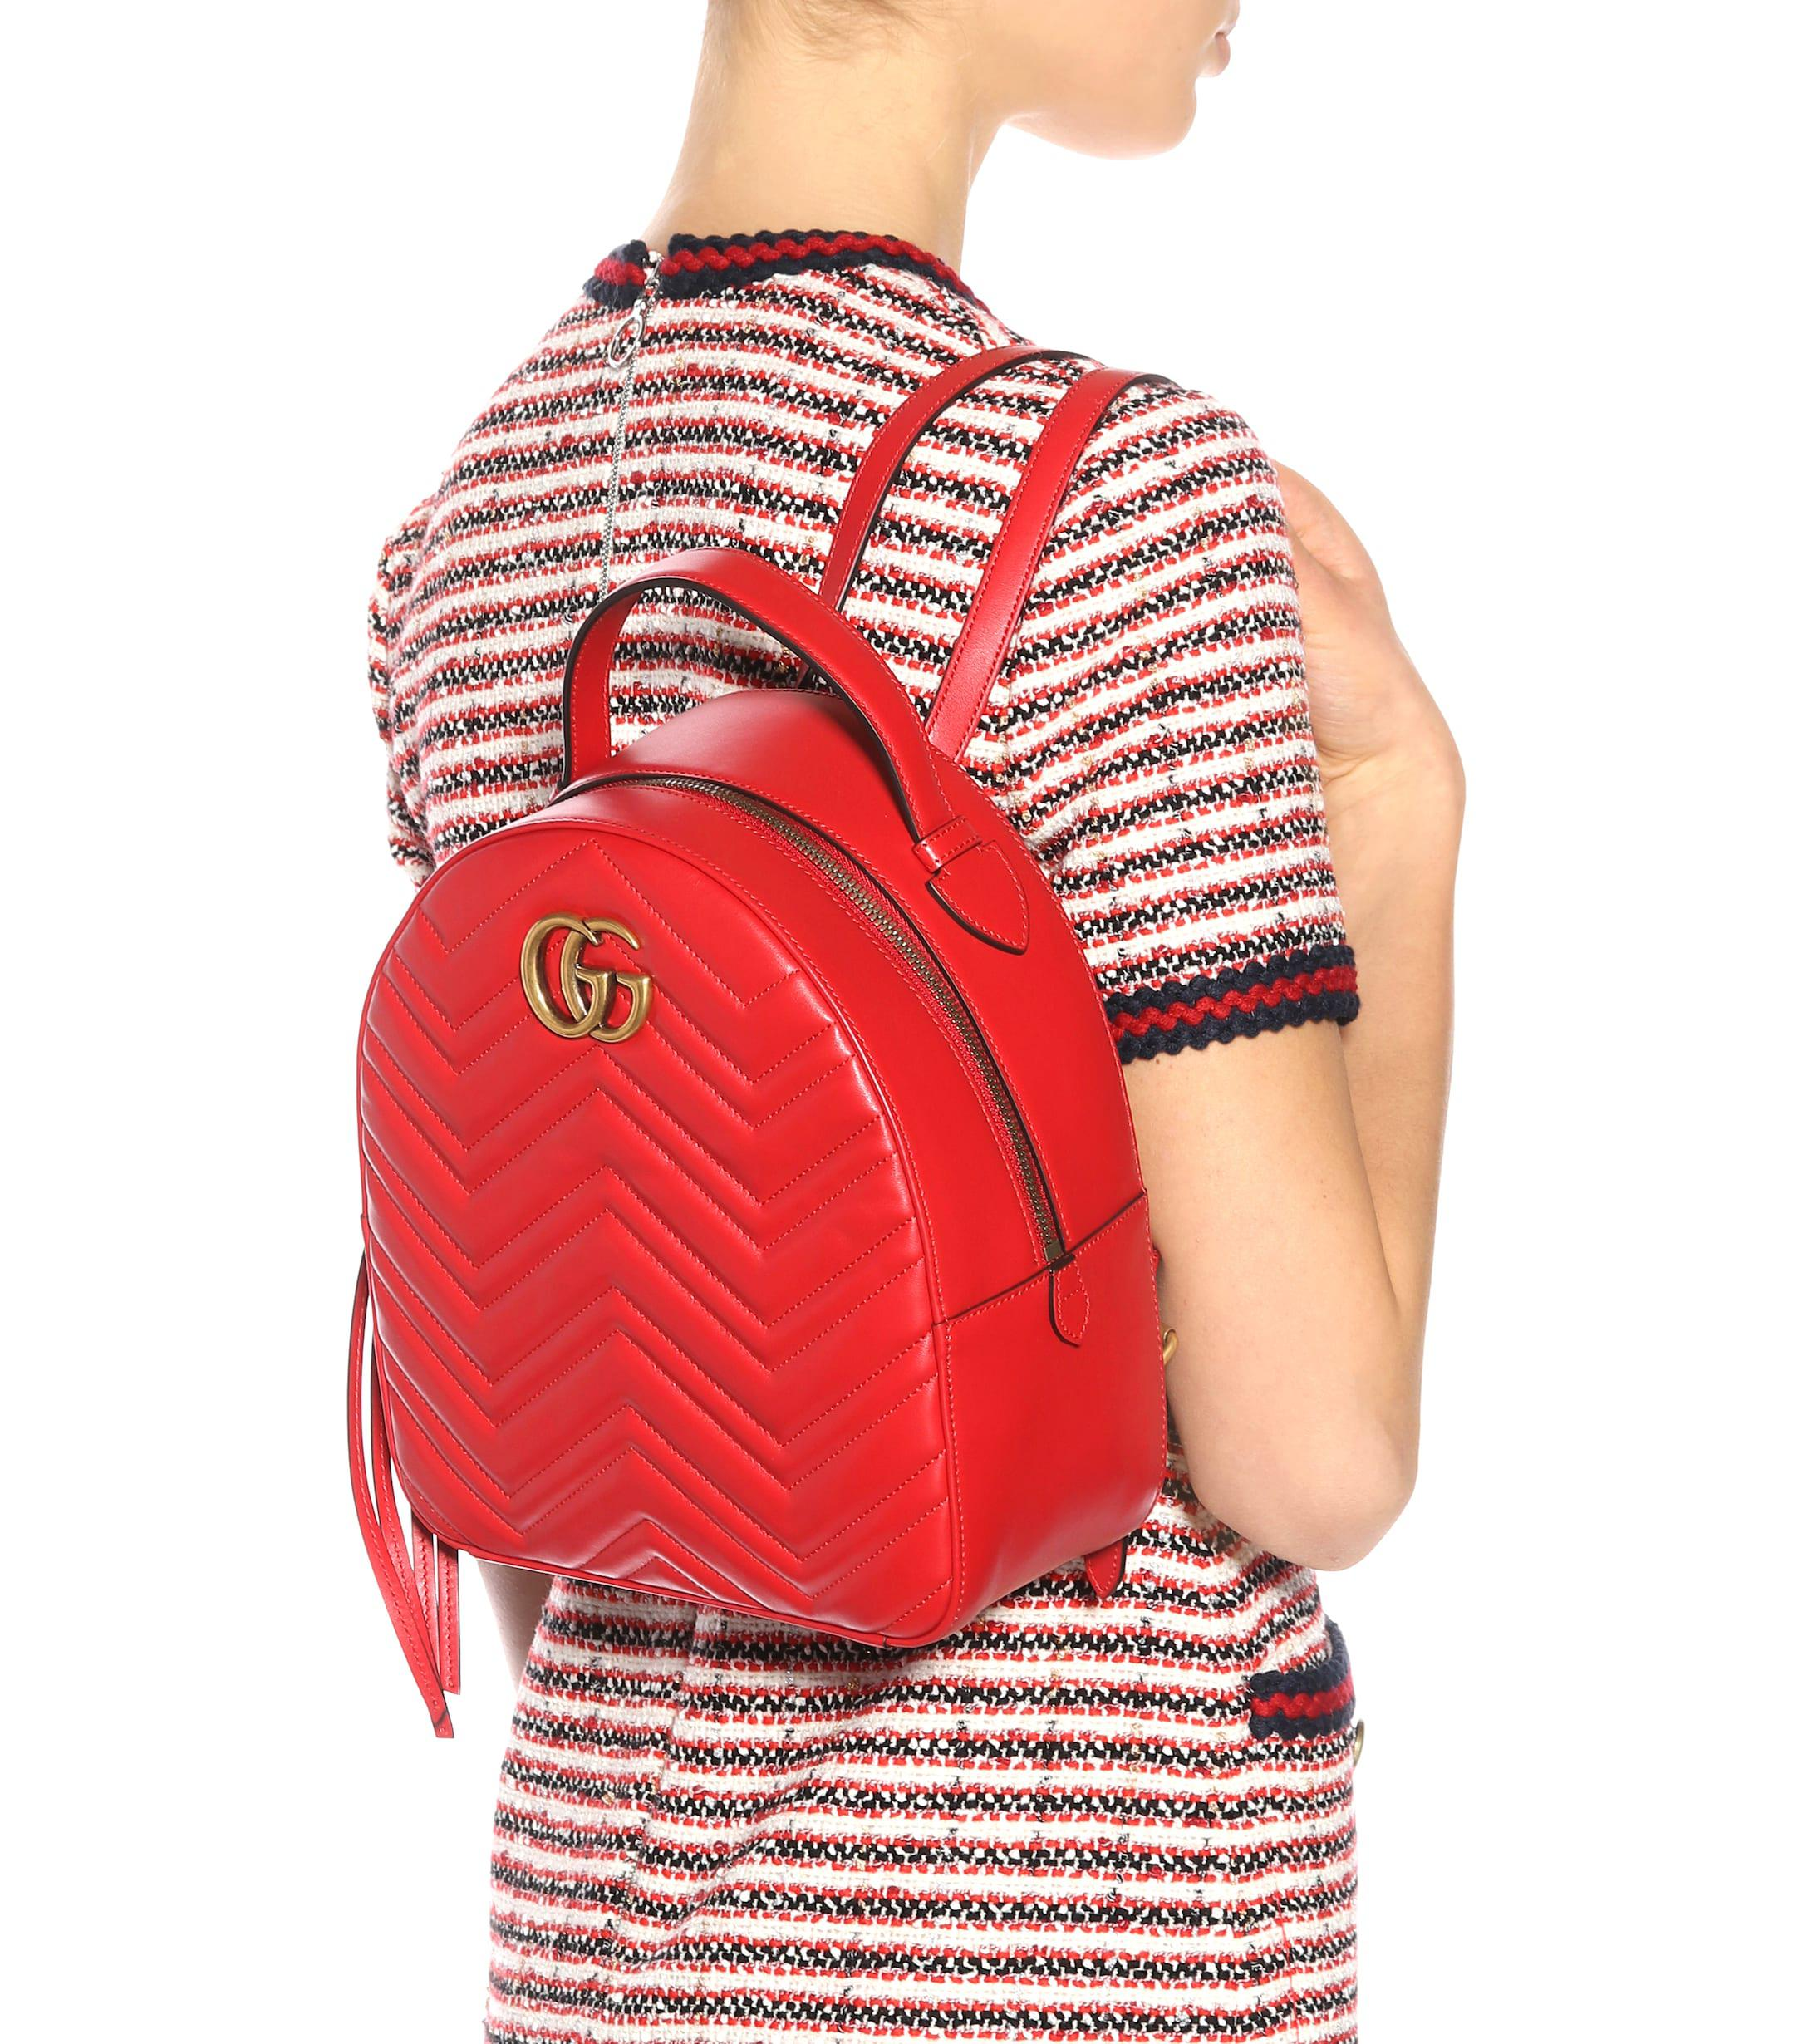 2cce89a21 Gucci - Red GG Marmont Matelassé Leather Backpack - Lyst. View fullscreen